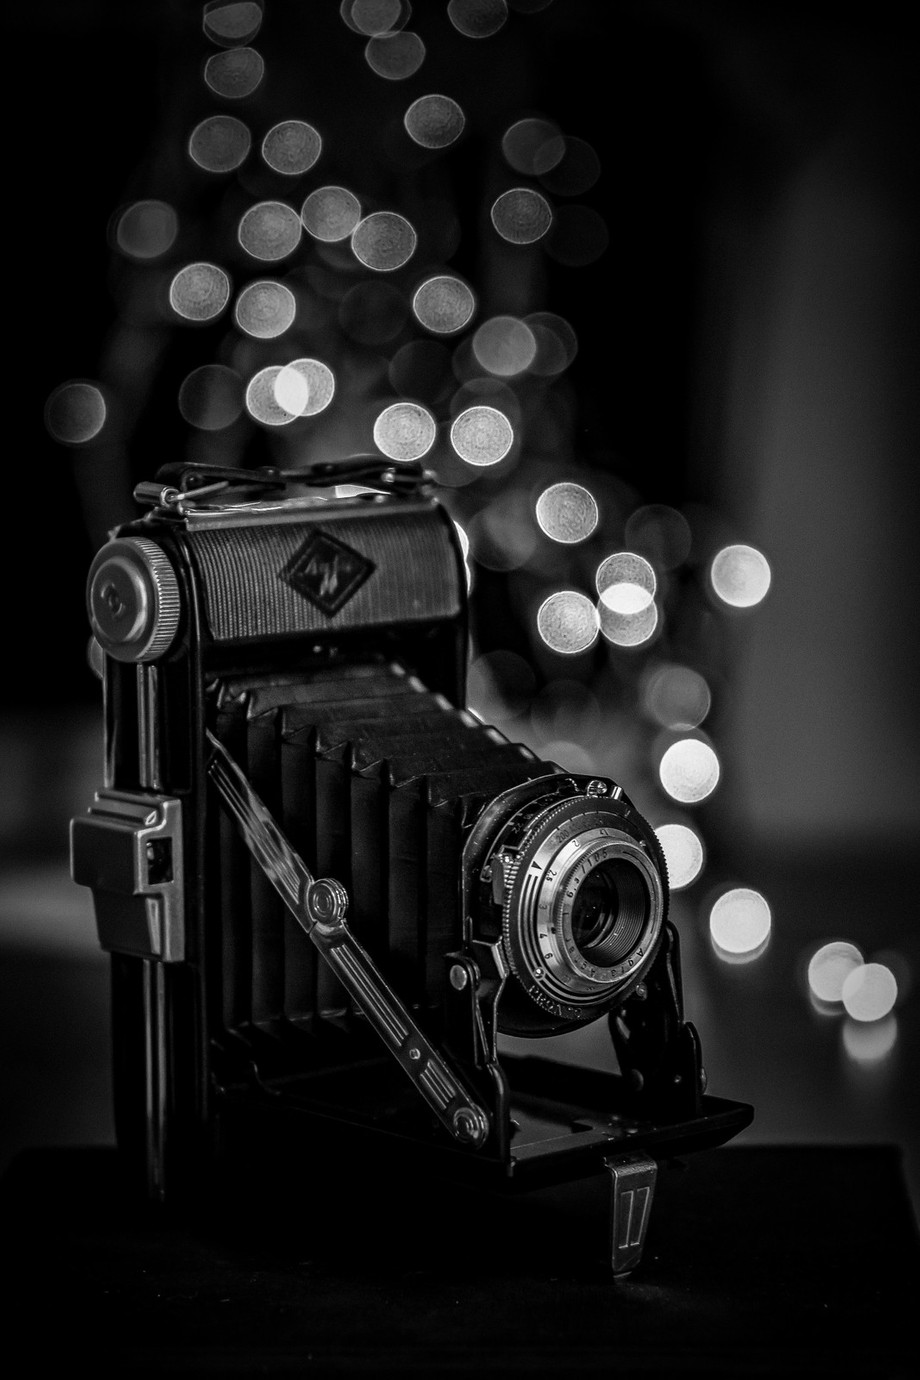 Vintage bokeh by NickSW - Everything Bokeh Photo Contest